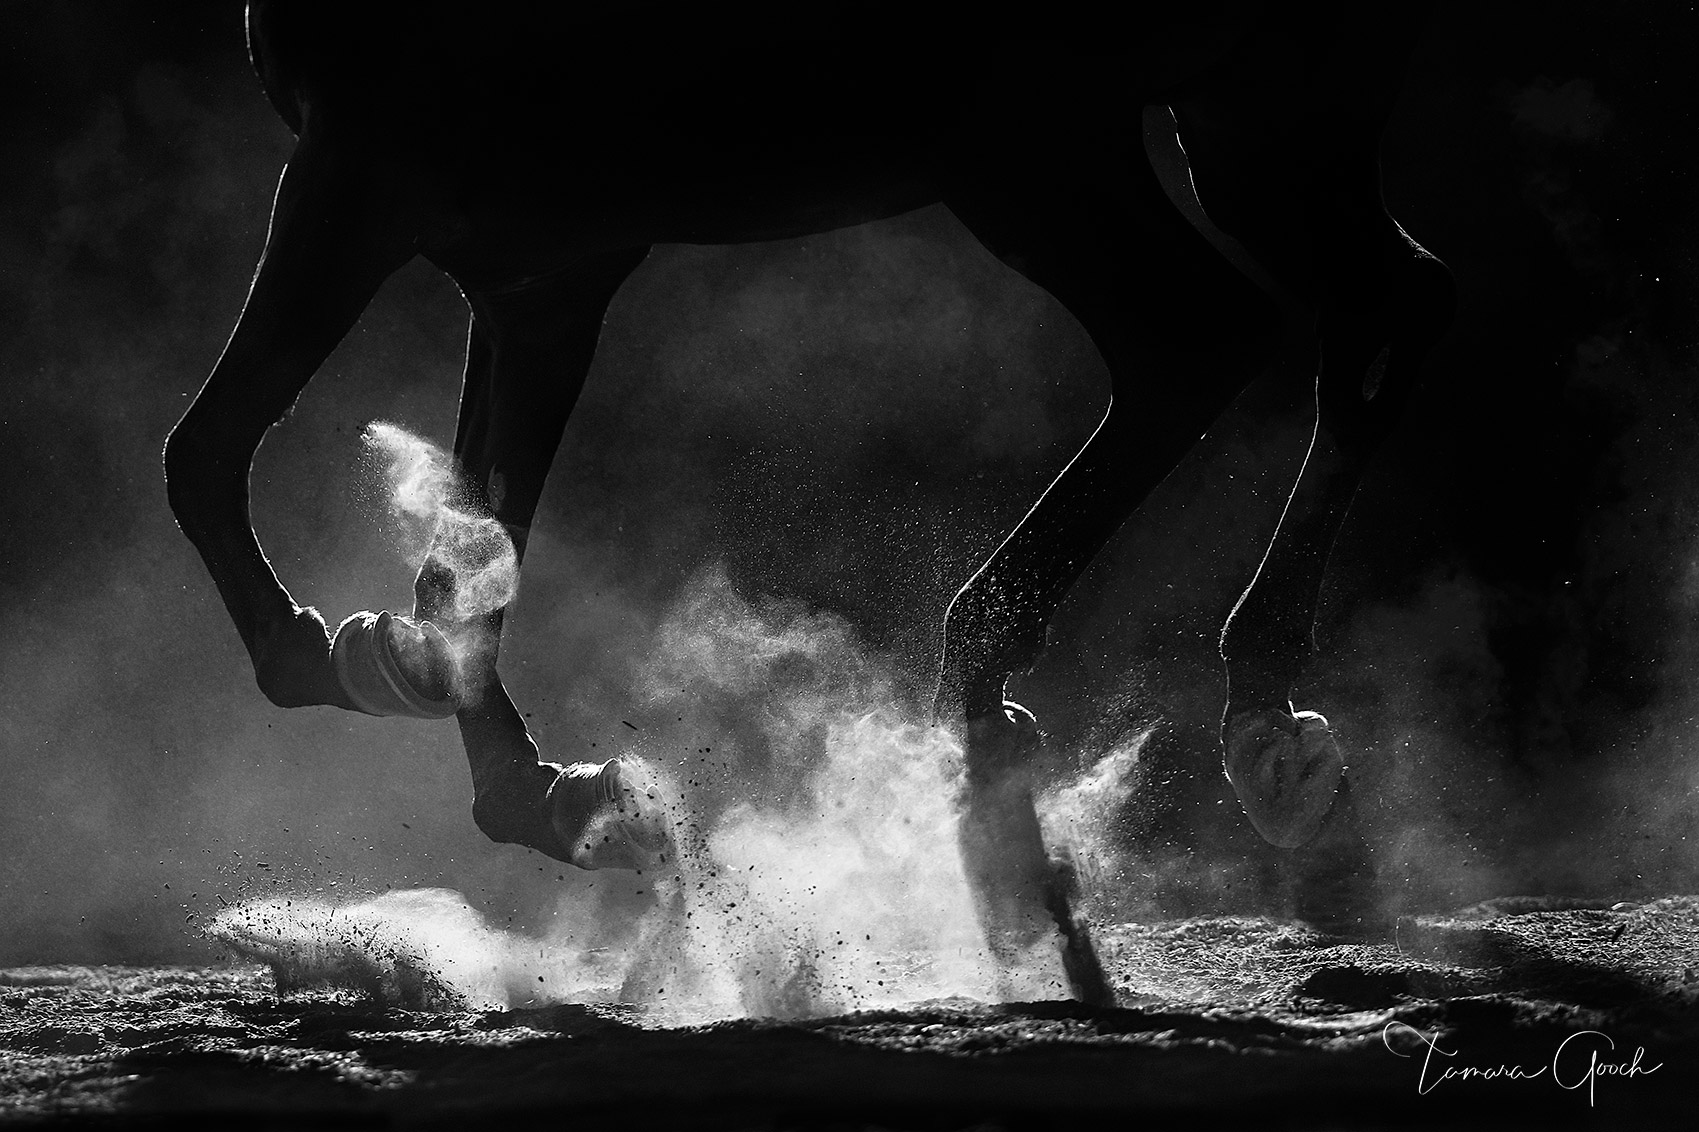 black and white, dust, backlight, hooves, horse power, powerful, hooves, dust, horse, horses, print, horse photography, equine, equine fine art, equestrian, lifestyle, luxury, Arabian, BNW, art, buy, , photo